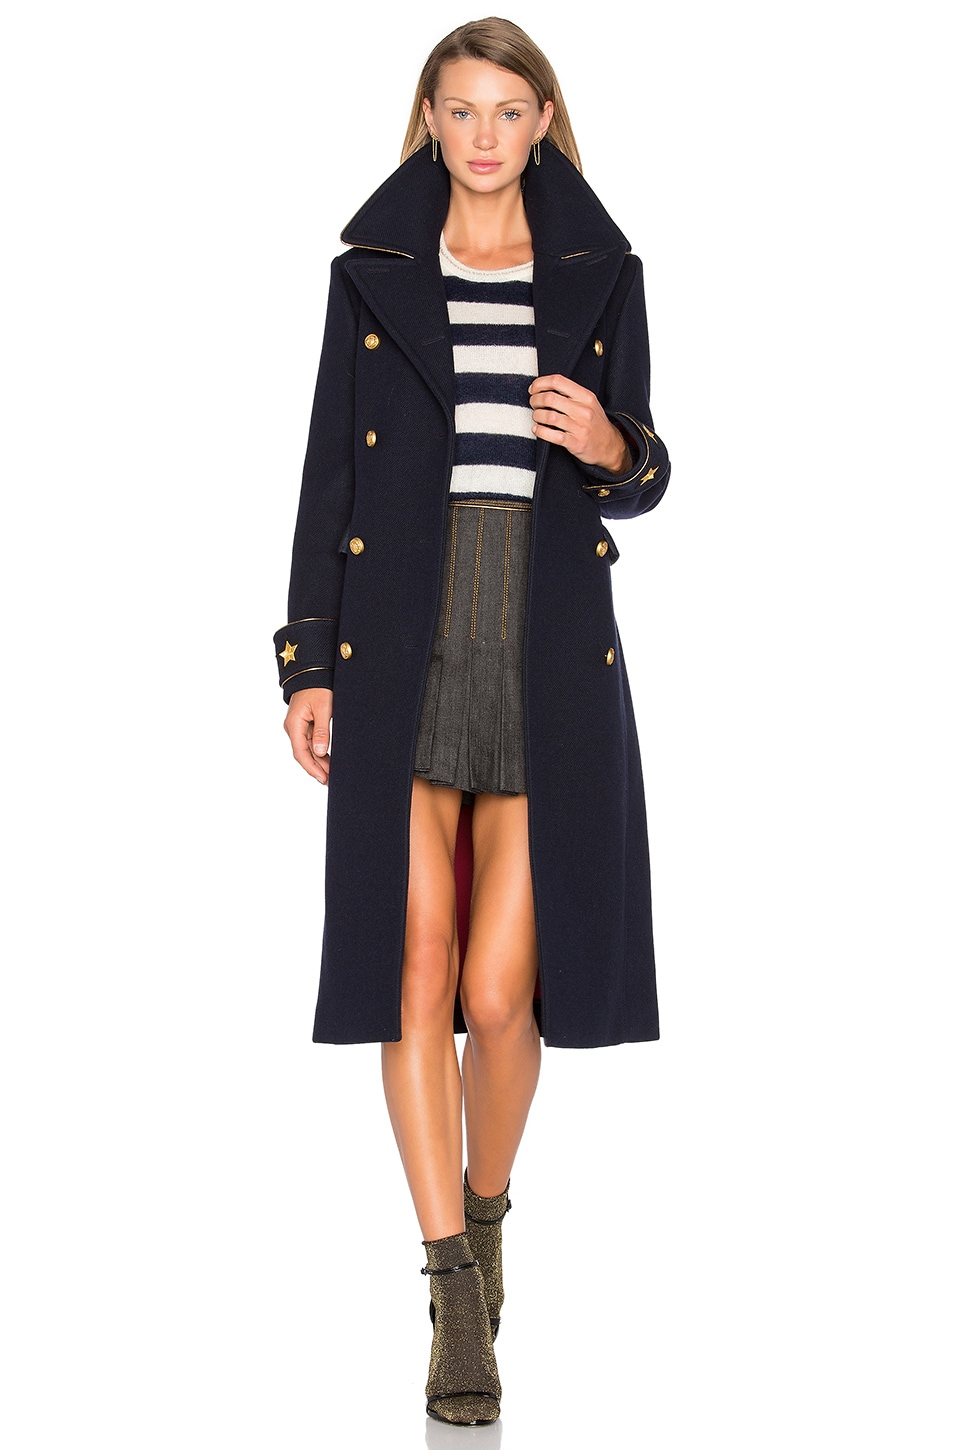 Hilfiger Collection Long Military Coat in Navy Blazer